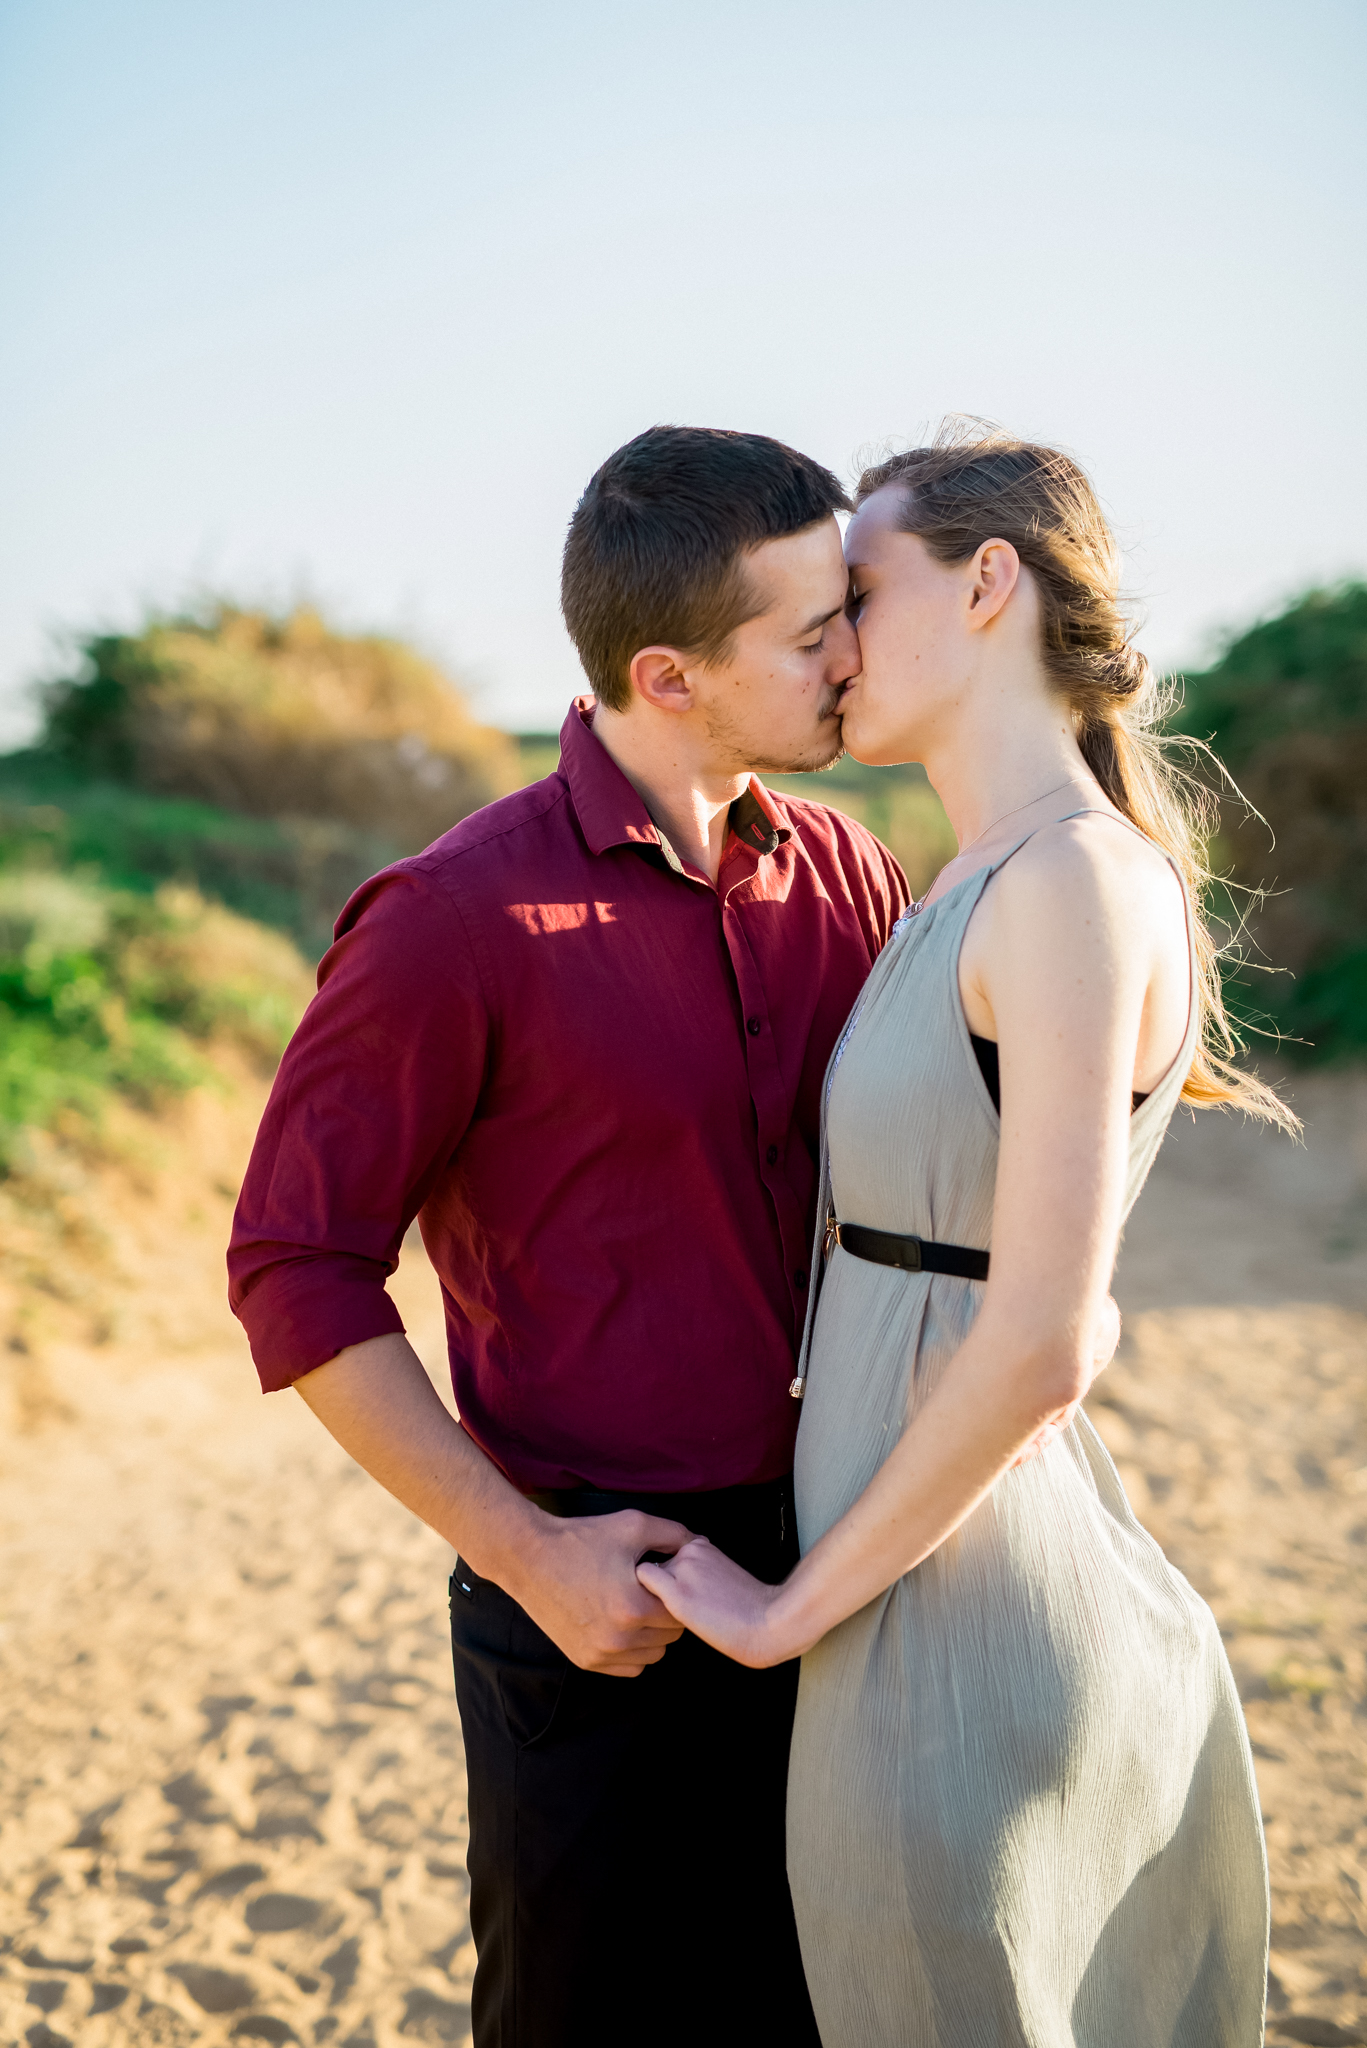 Cliffside-beach-engagement-session-hadera-israel-kate-giryes-photography-9207.jpg